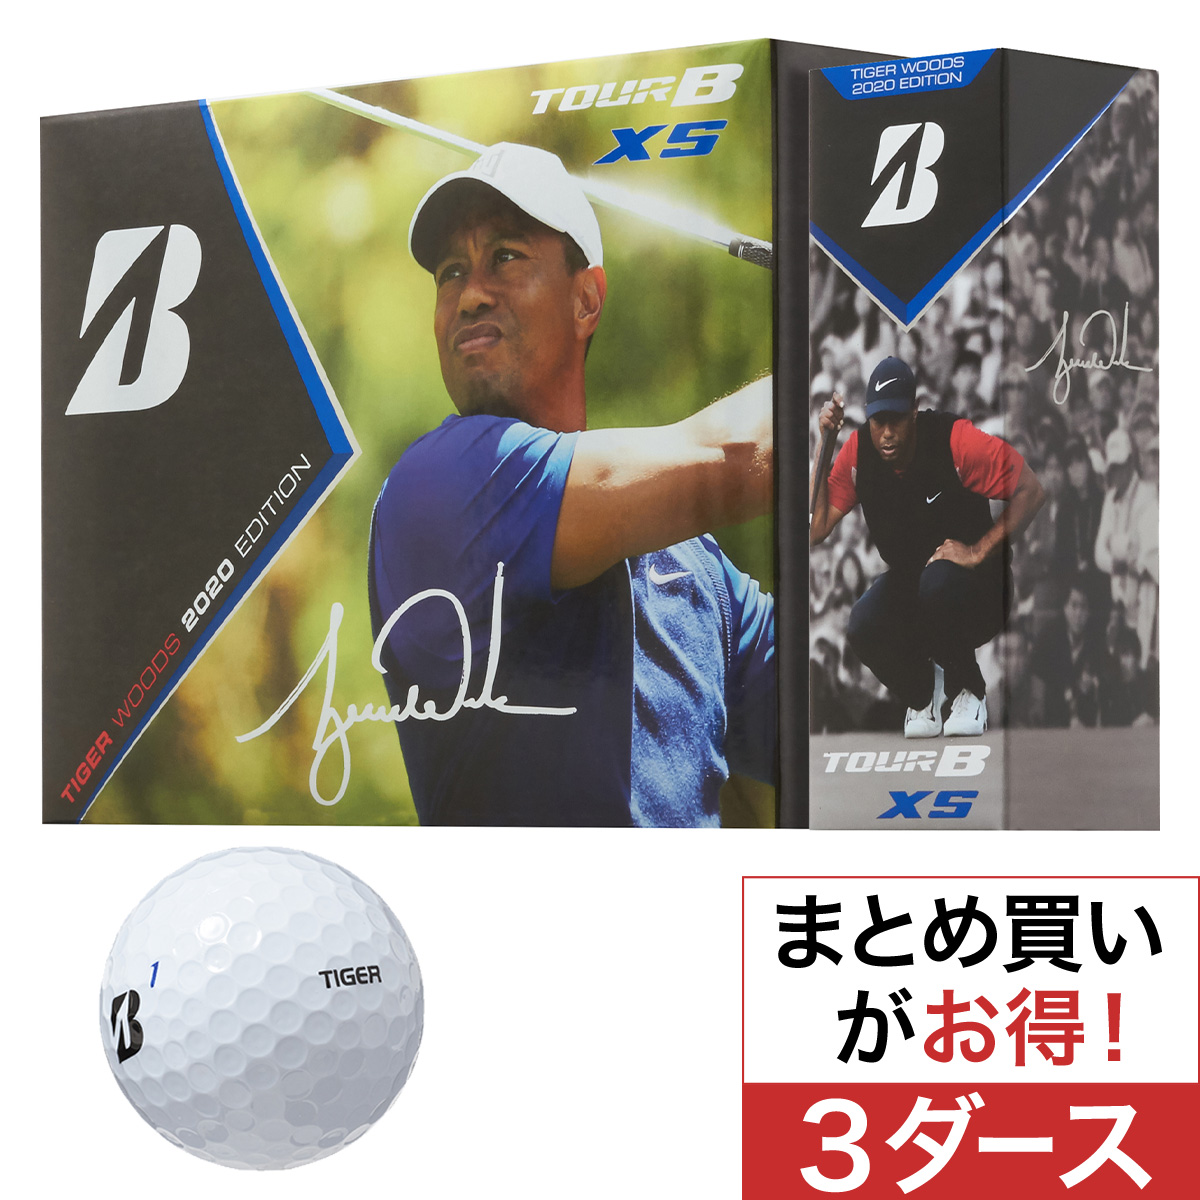 TOUR B XS Tiger Woods 2020 Edition ボール 3ダースセット